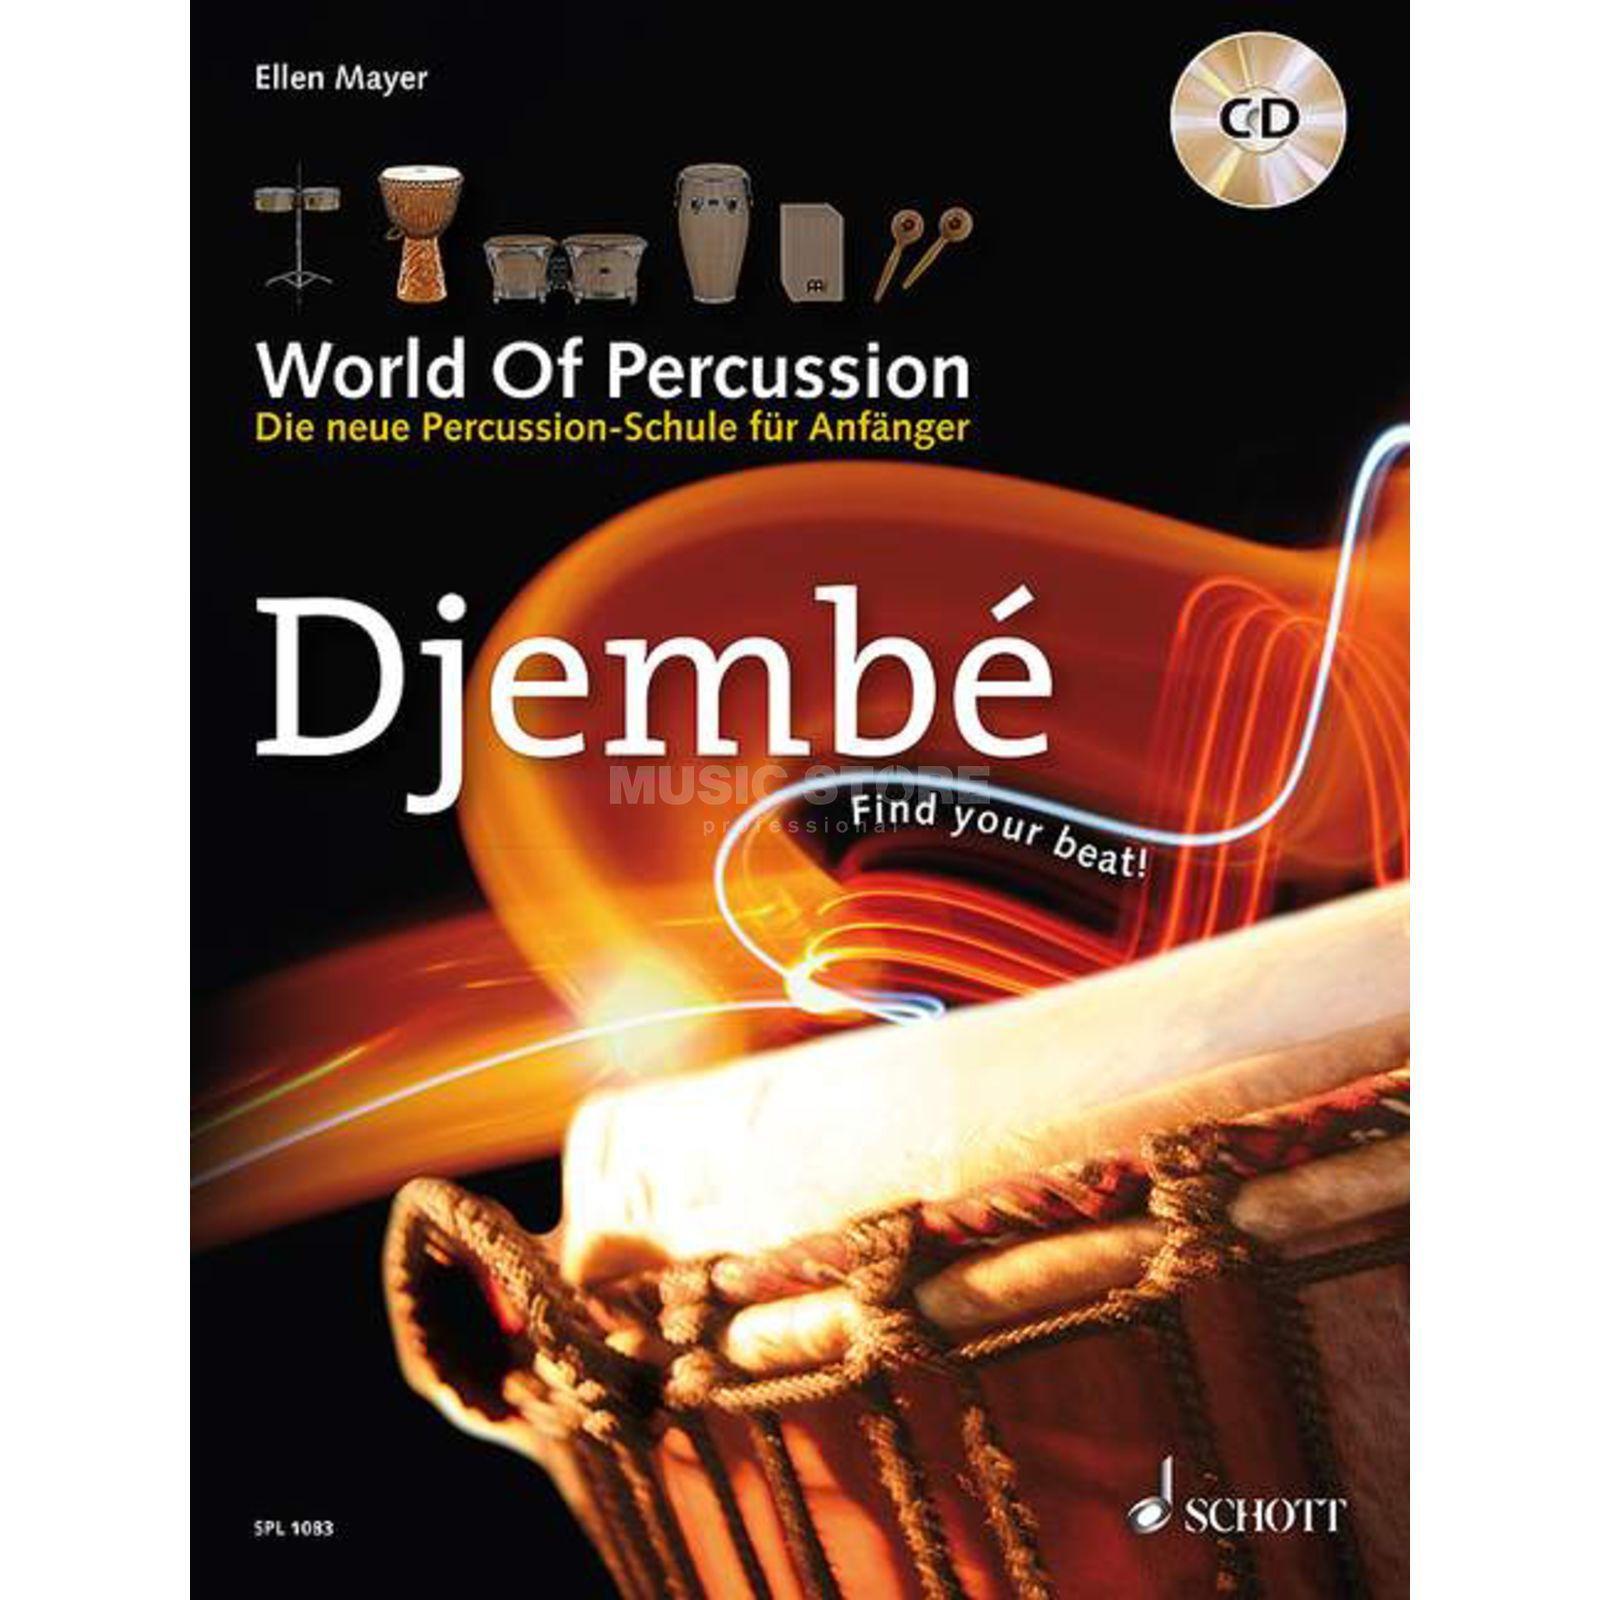 Schott-Verlag Djembe, World Of Percussion Ellen Mayer, mit CD Produktbild